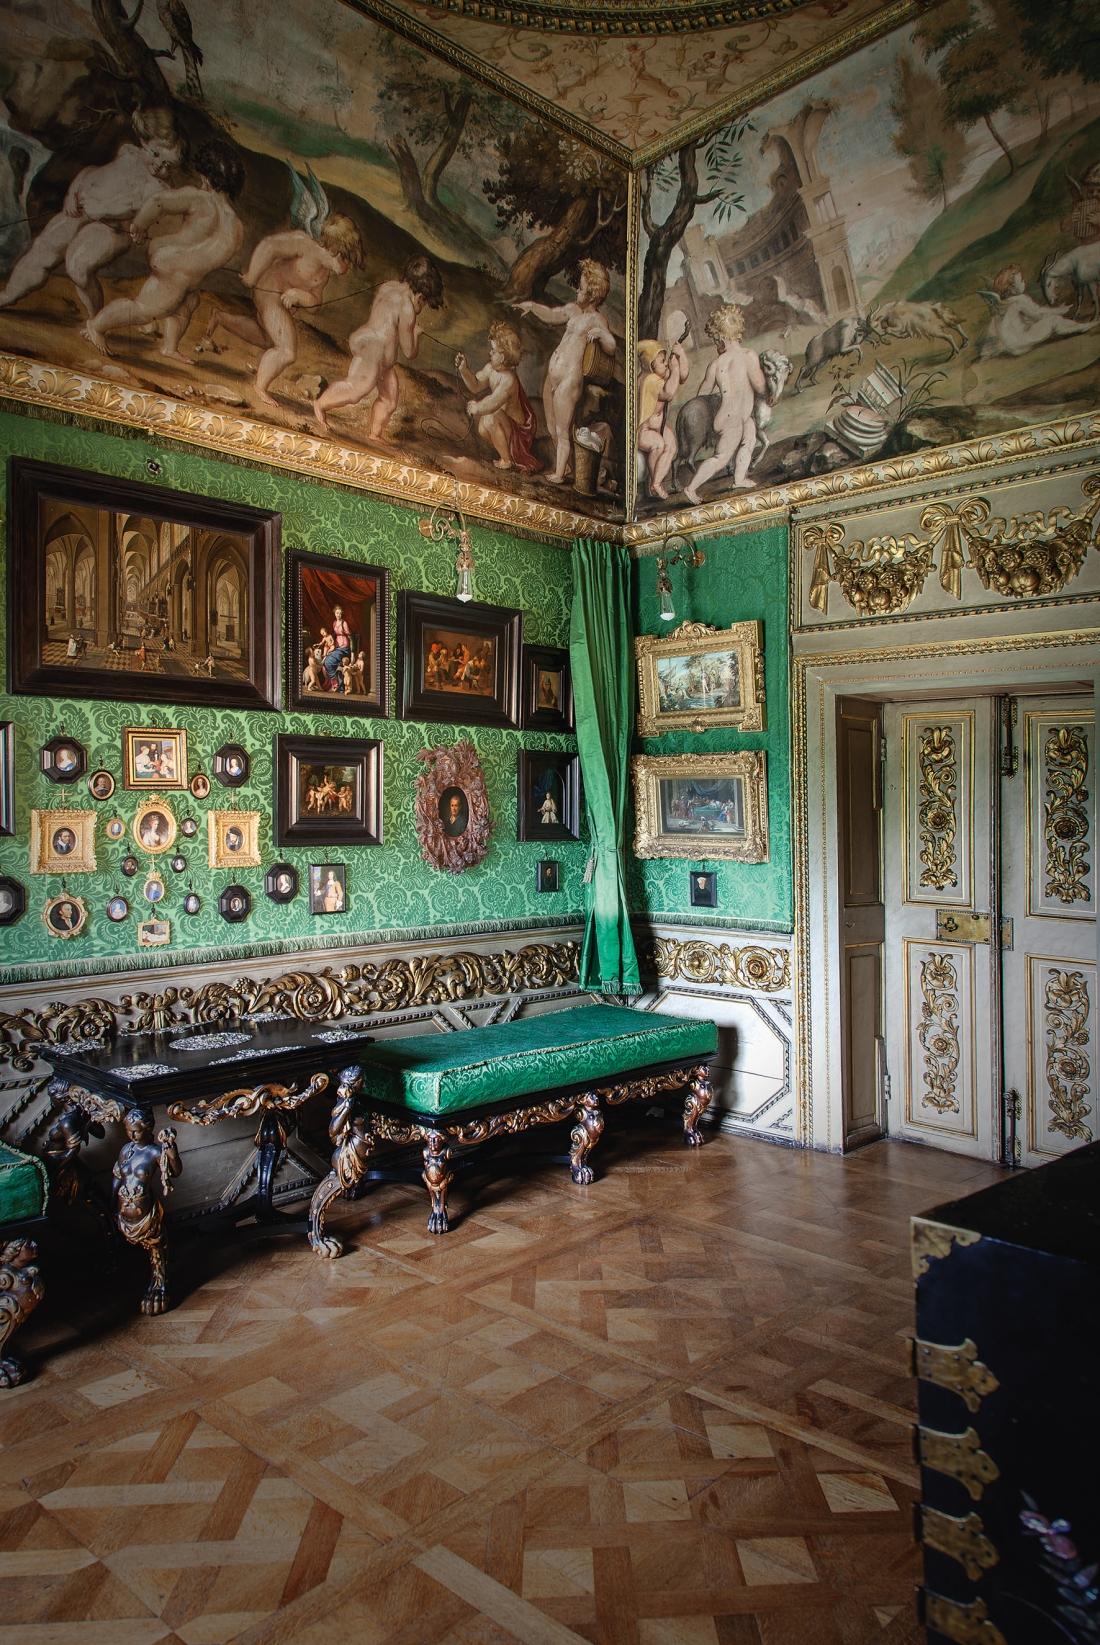 Ham House. The Green Closet. The decoration and contents of this room are original although the green silk damask has been copied recently. It is a rare example of the high culture, in both the fine and decorative arts, of the English court before the Commonwealth. Courtesy © Derry Moore | Prestel